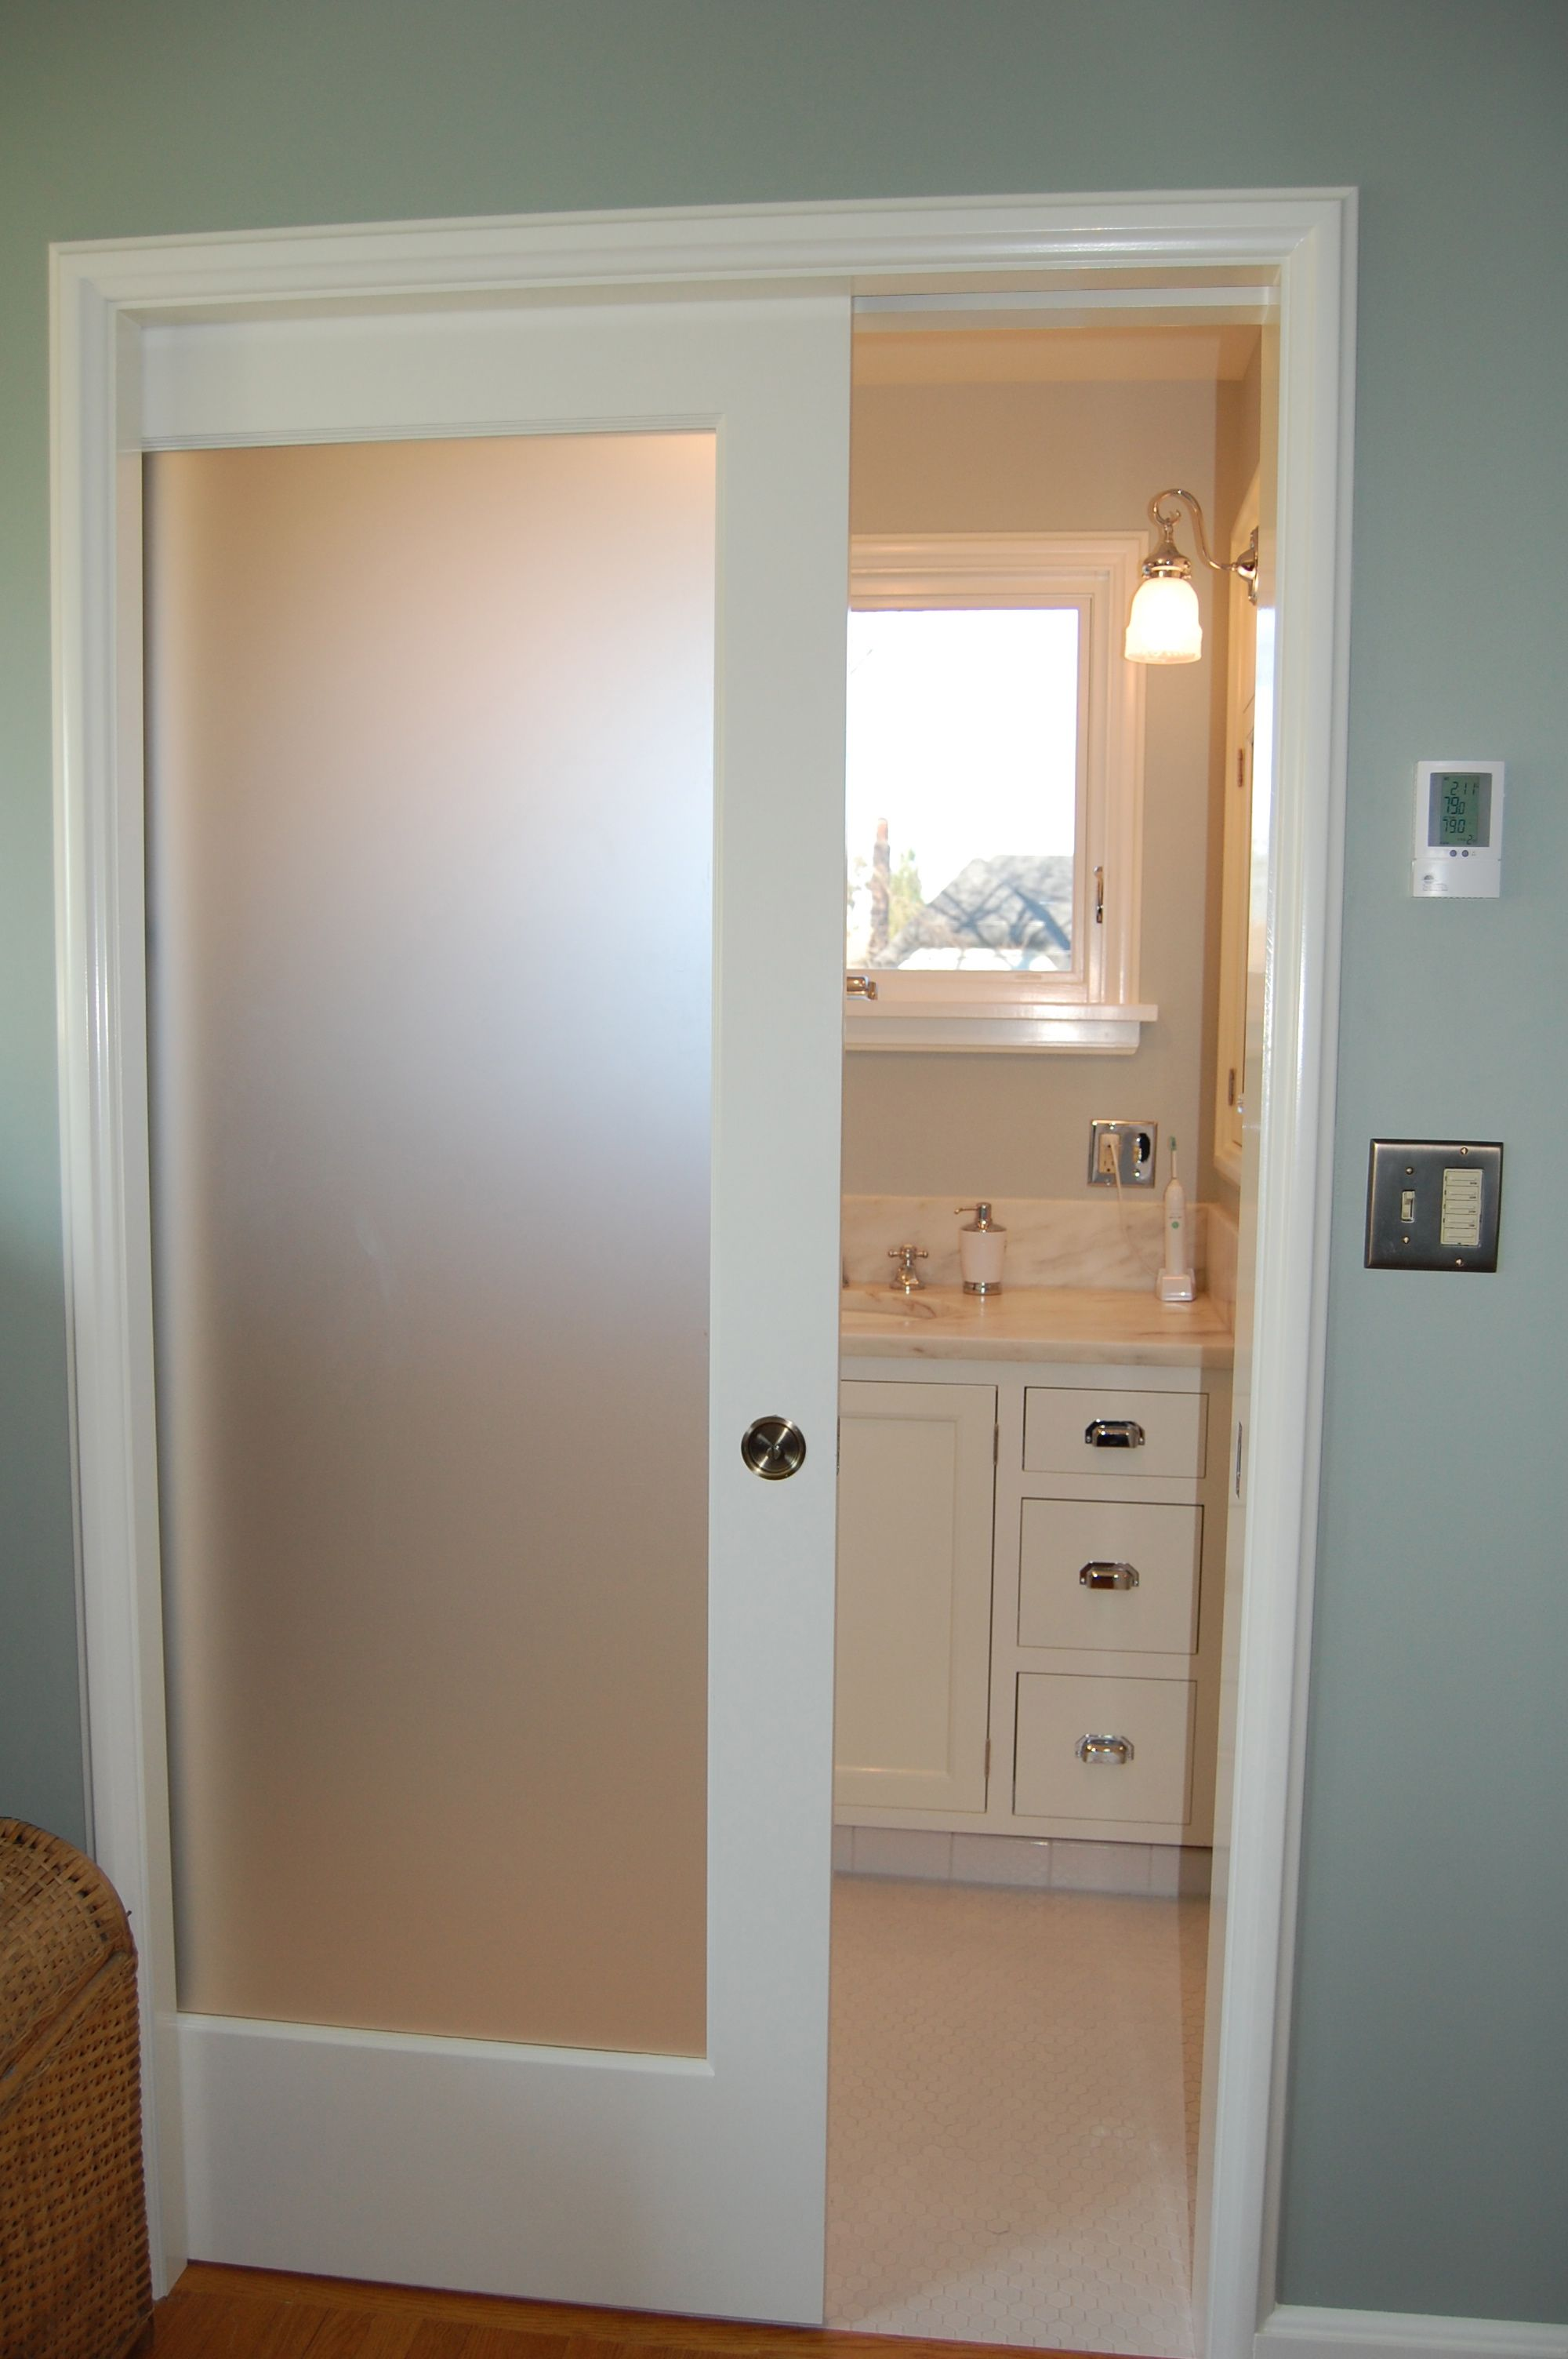 Small Bathroom Entry Door Ideas alameda remodel is complete! | pocket doors, doors and glass